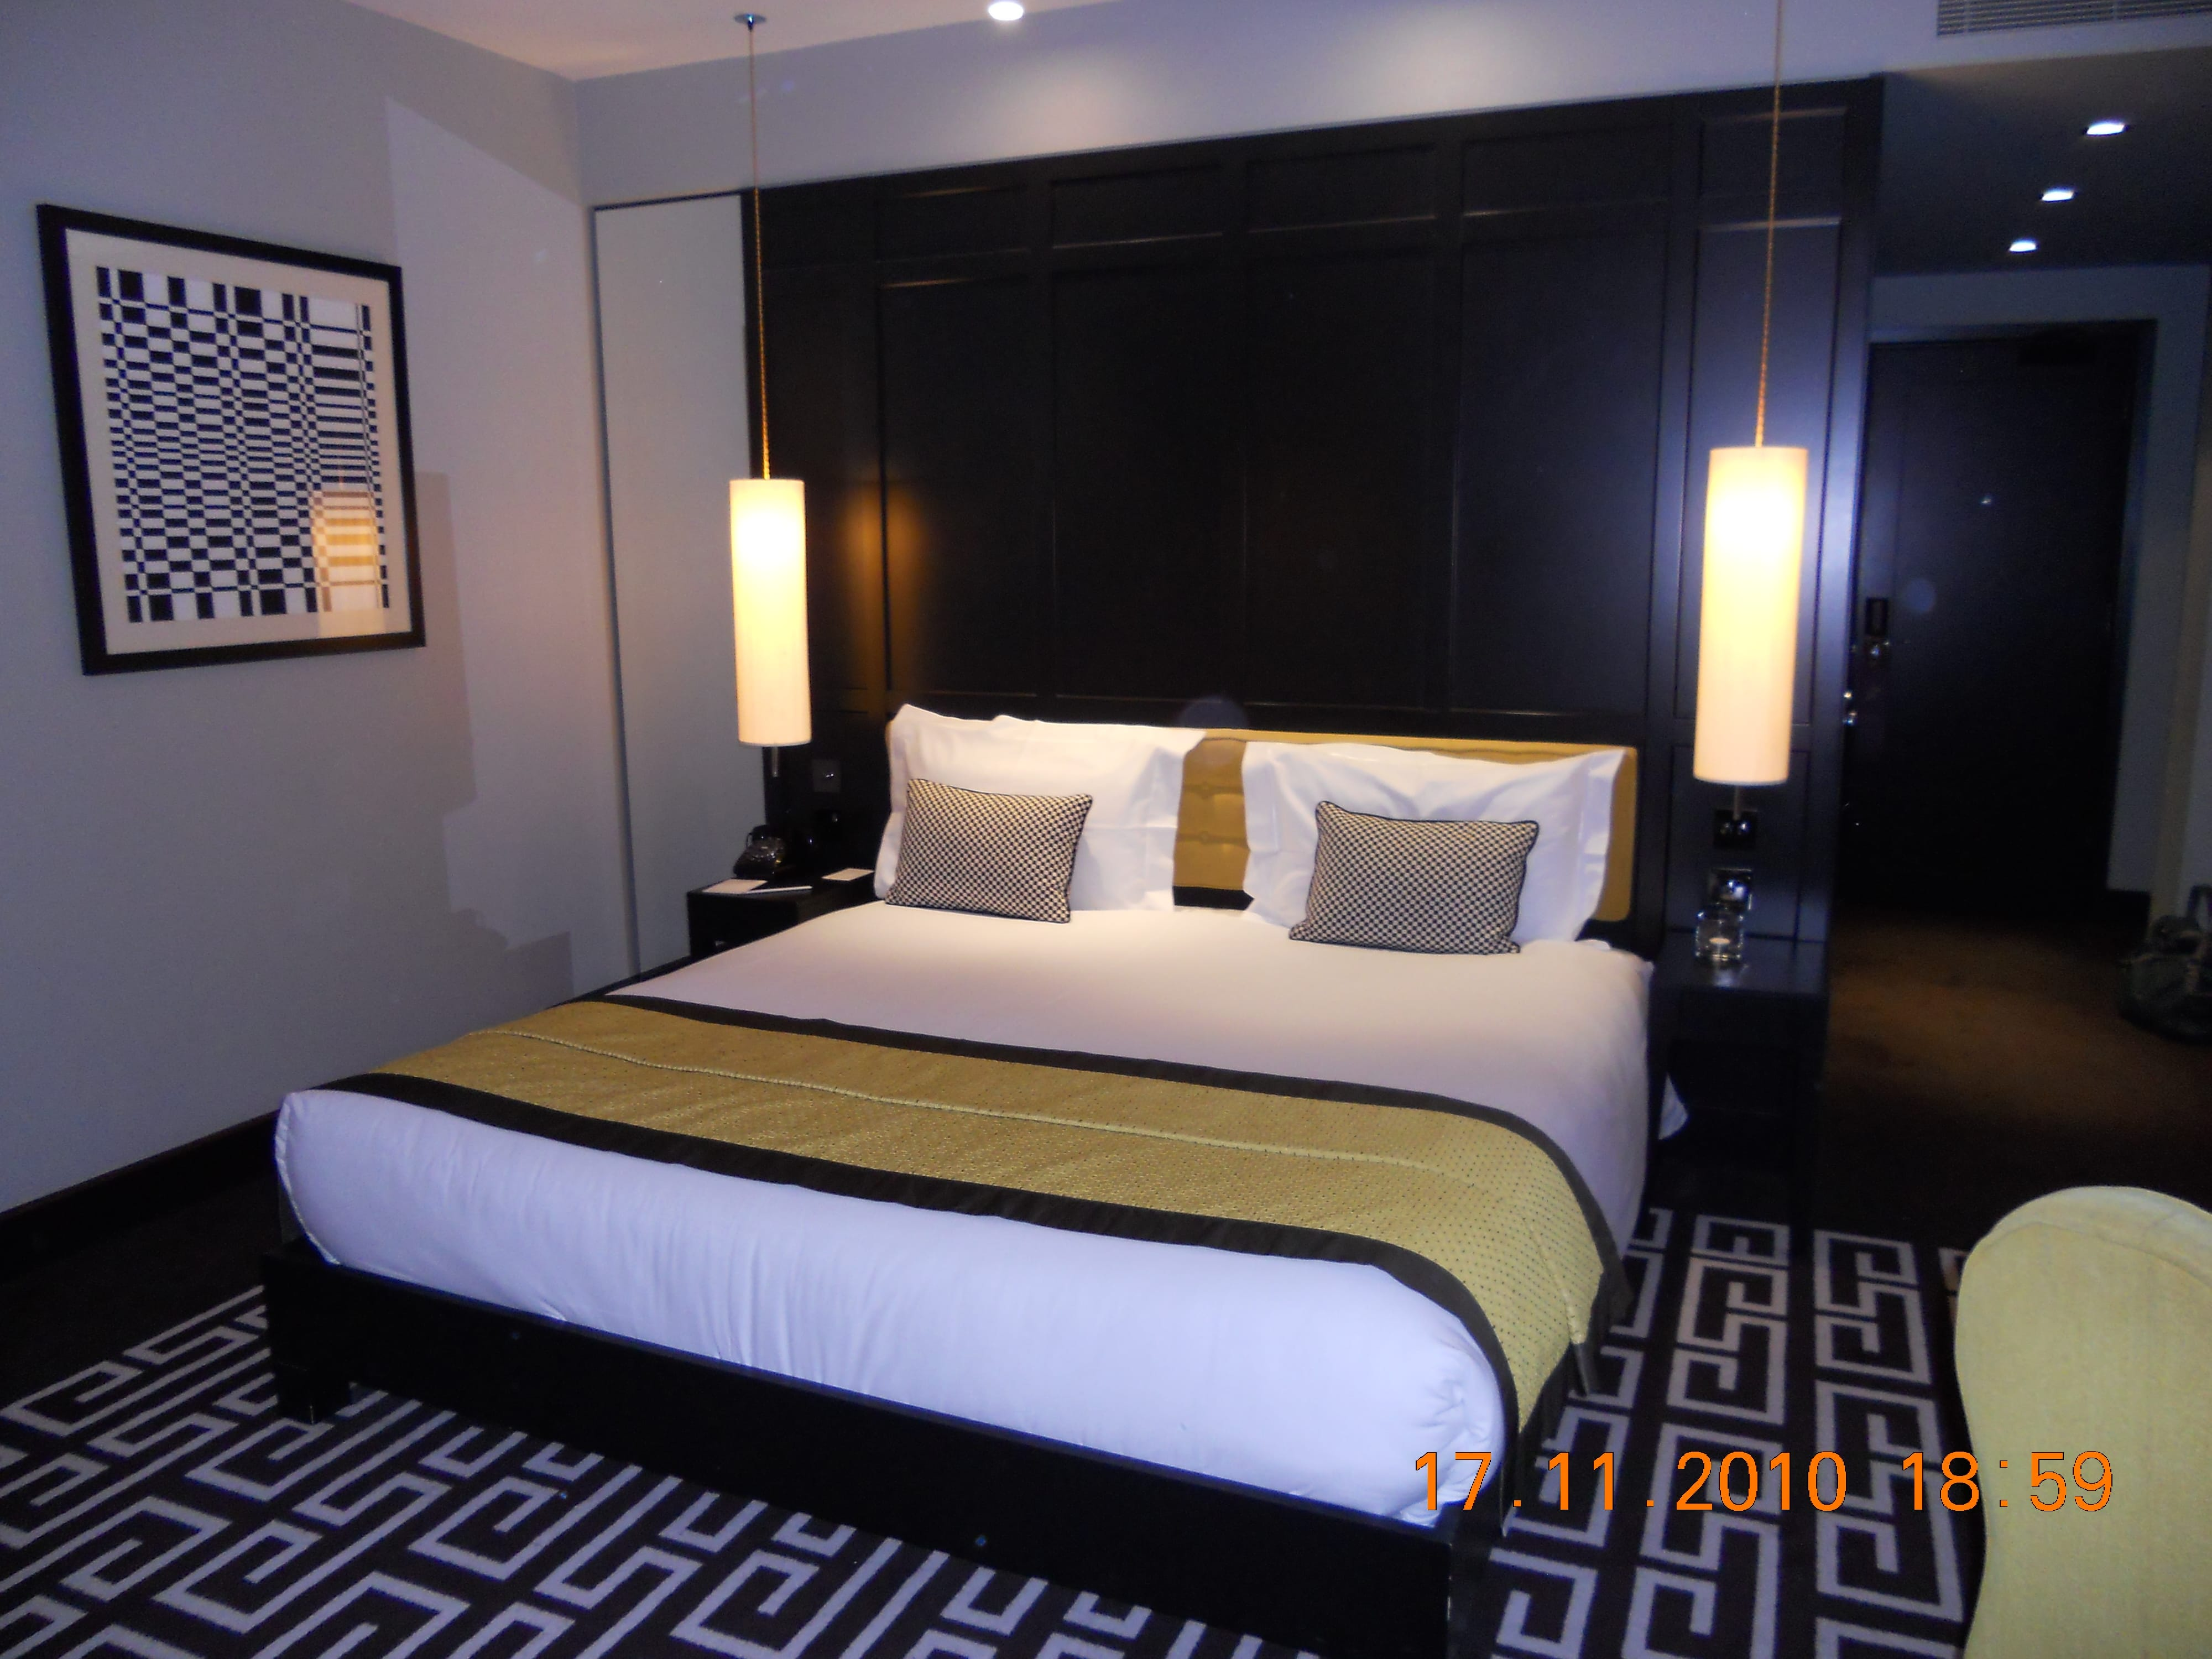 fitzwilliam hotel bedroom ebookers ireland blog travel guide